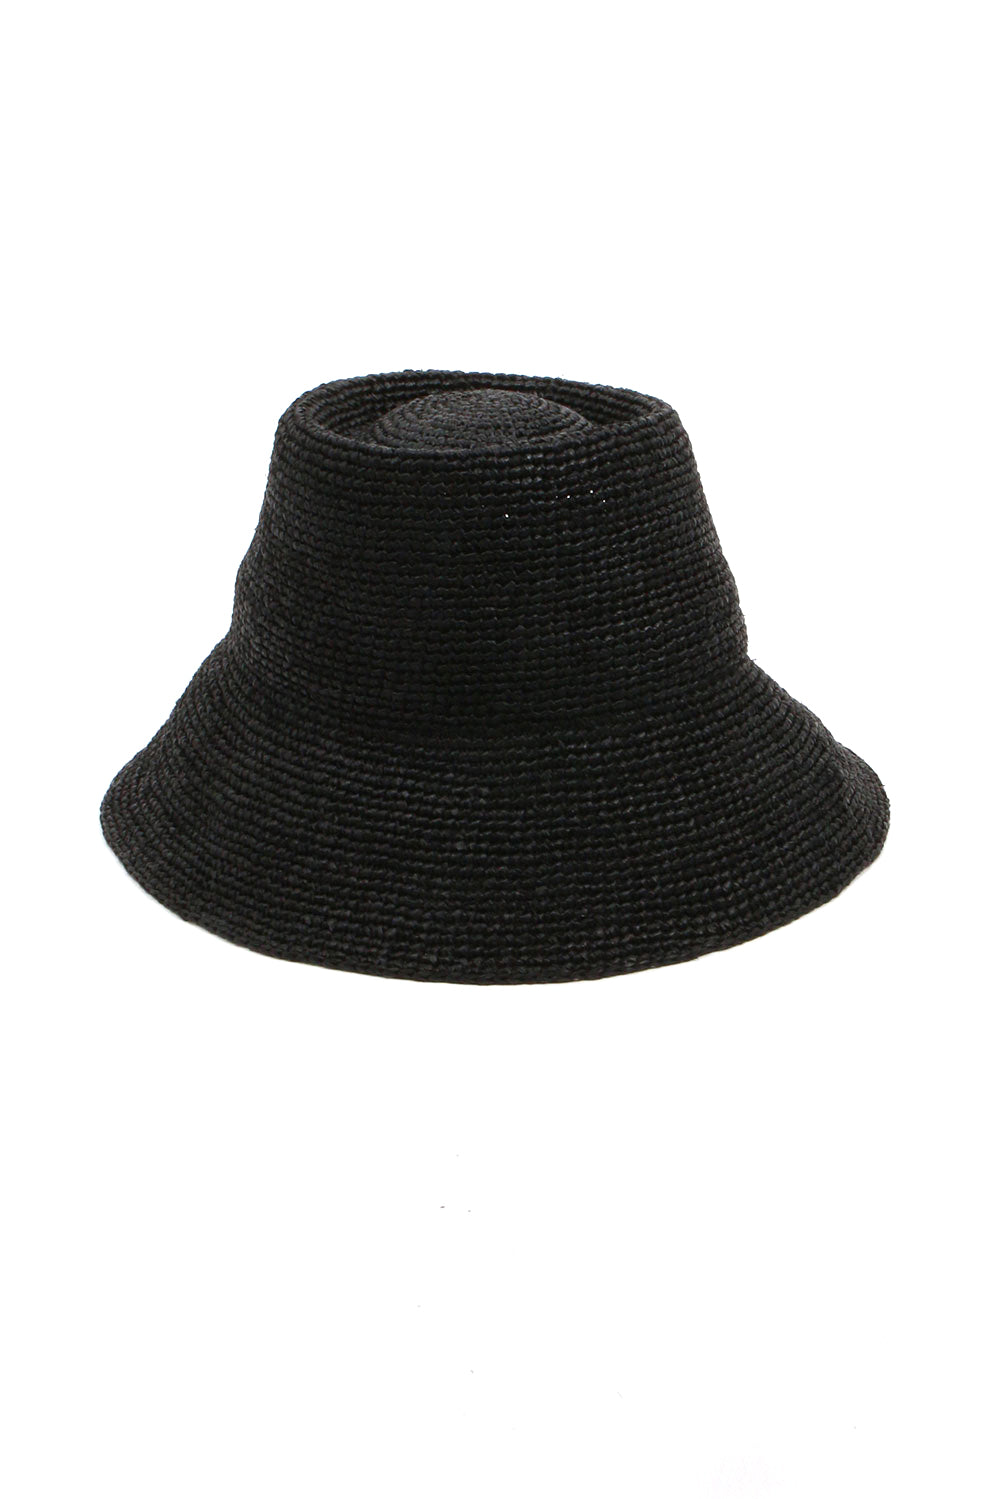 Black Raffia Hat Named Felix From Janessa Leone